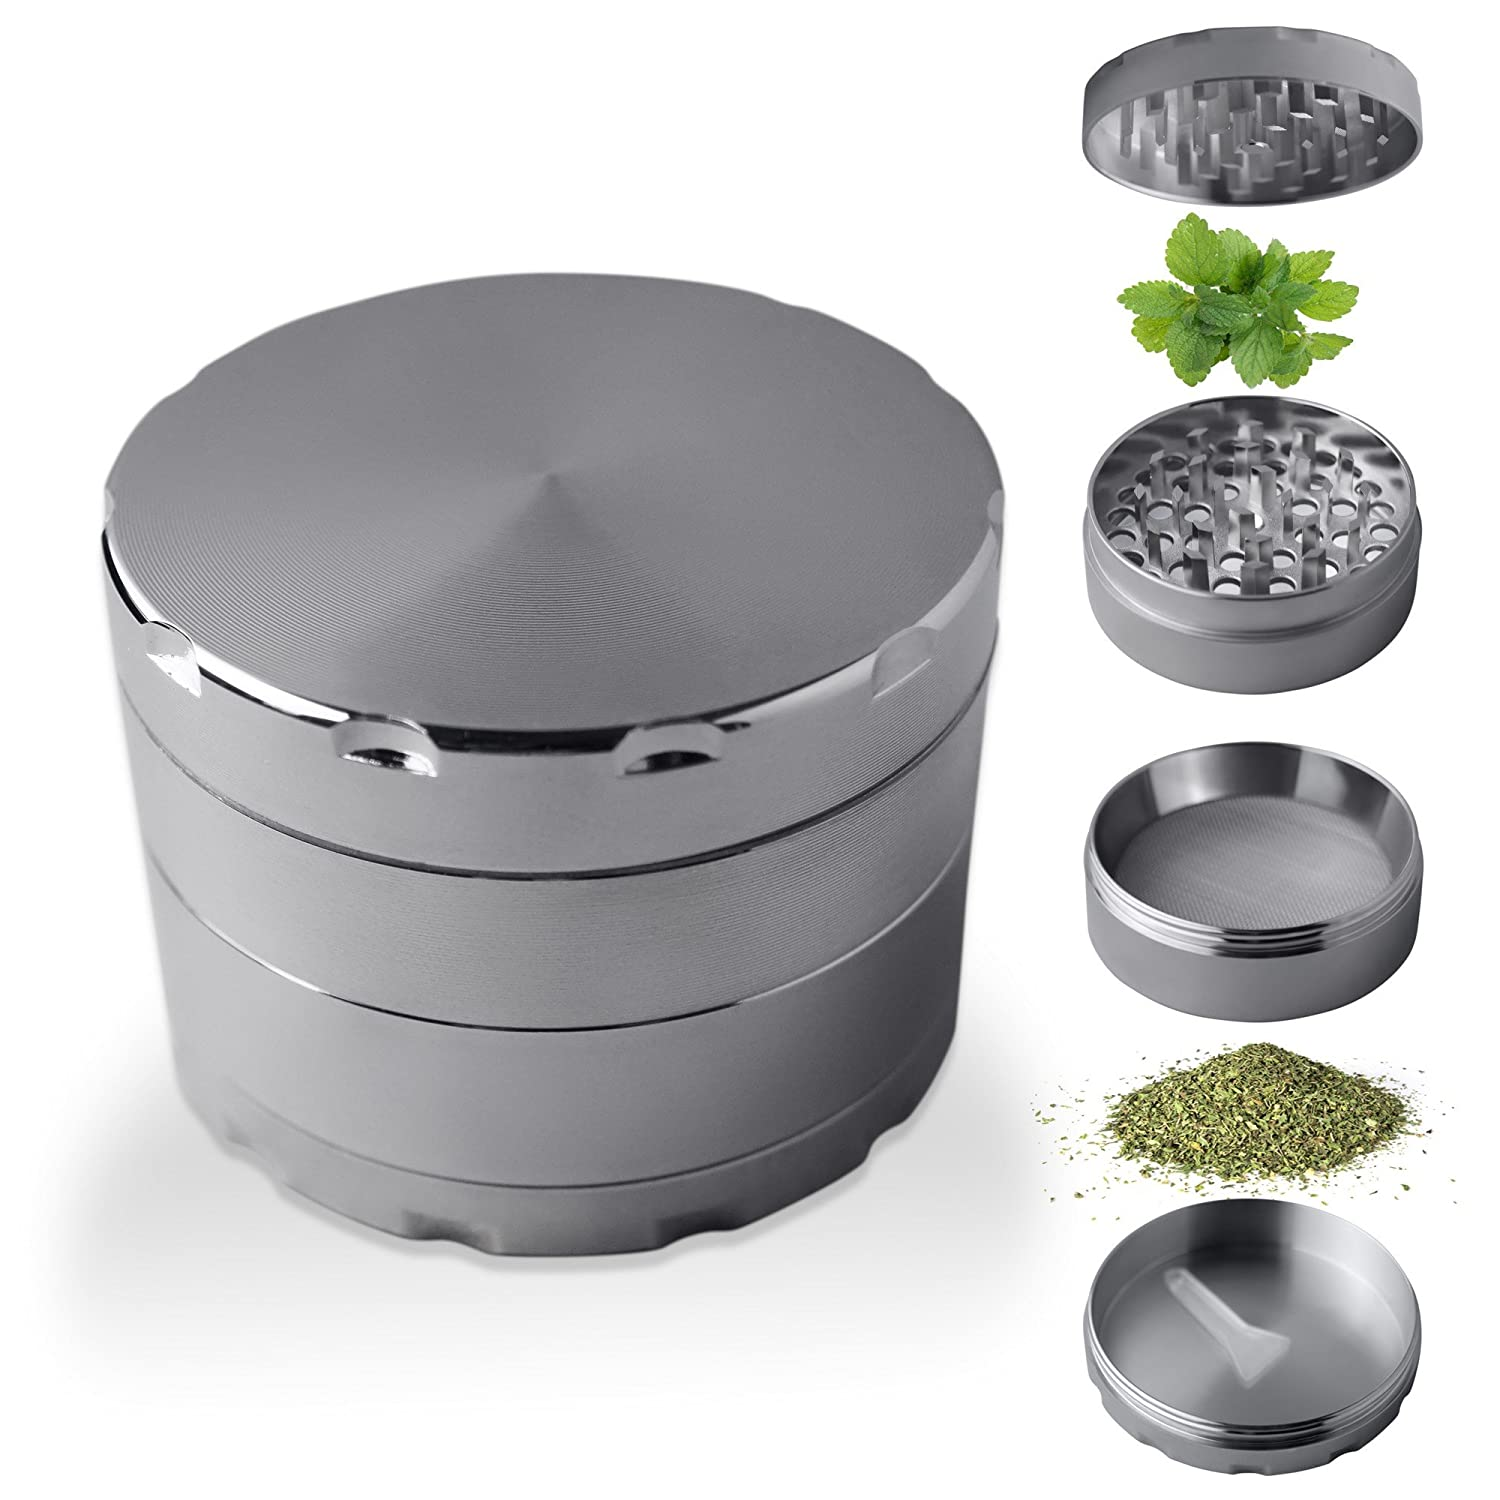 Premium Quality Herb Spice Tobacco Grinder with Pollen Catcher | Crusher crushes cereals coffee herbs grass |Consisting of 4 parts with lid with a strong magnet sharp shaped teeth pollen catcher and collecting tray